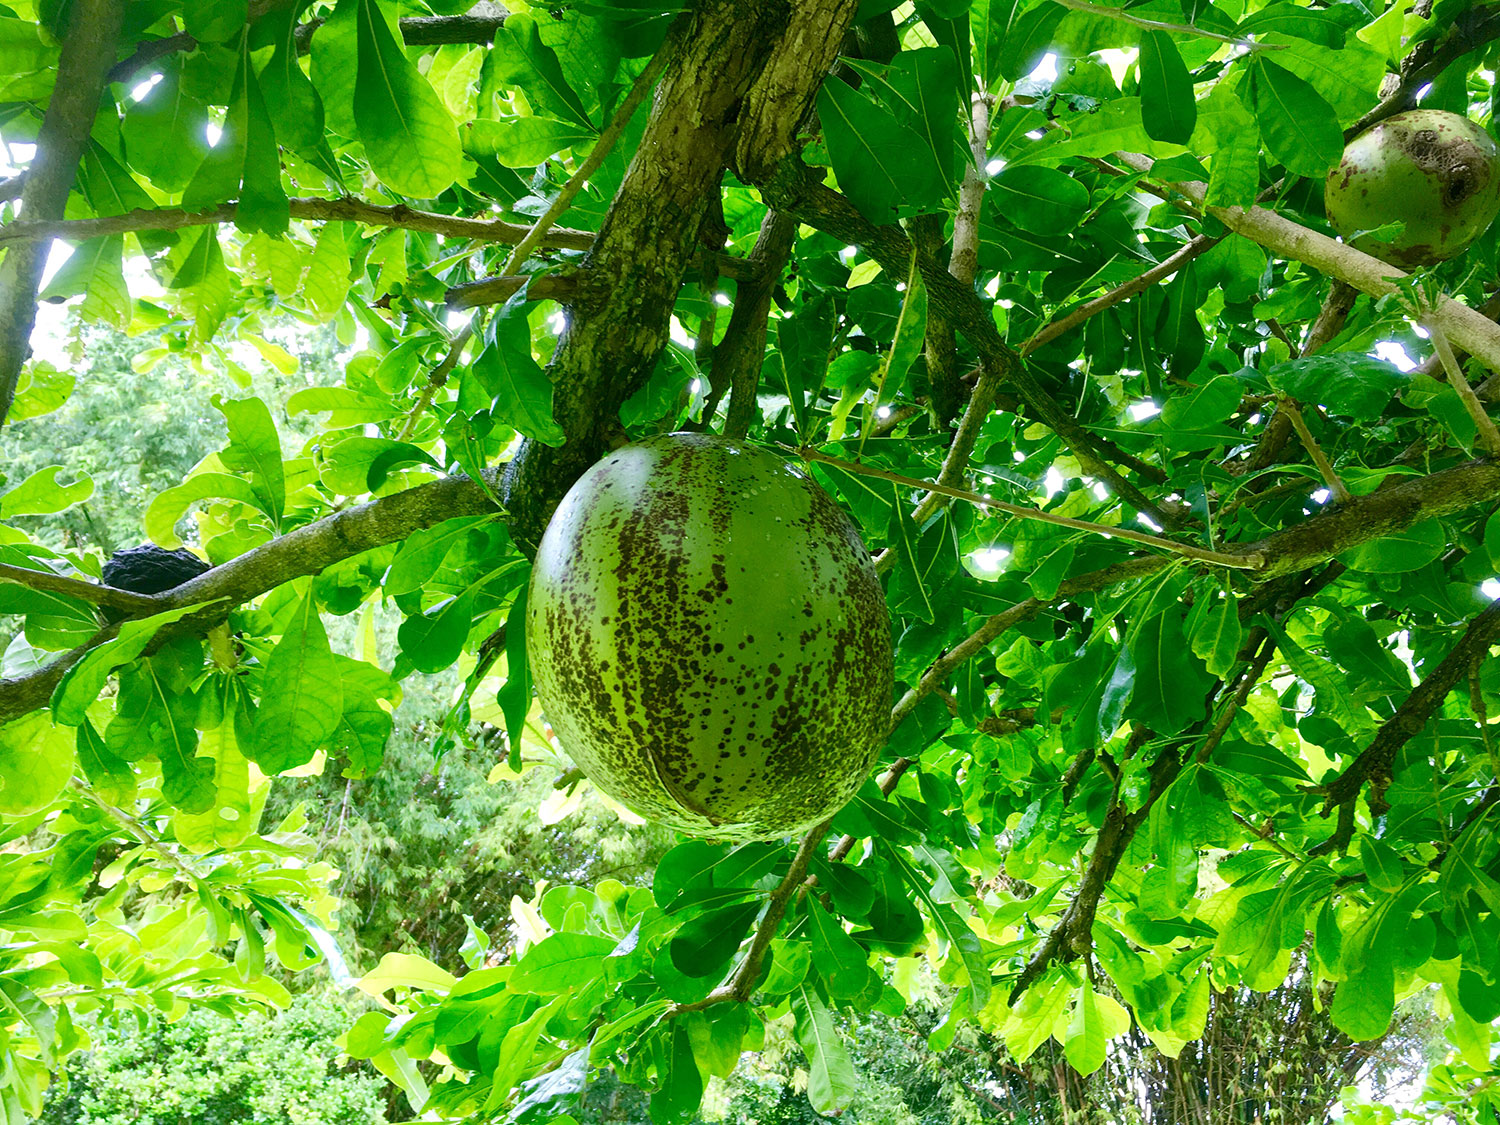 Calabash tree in the main garden.